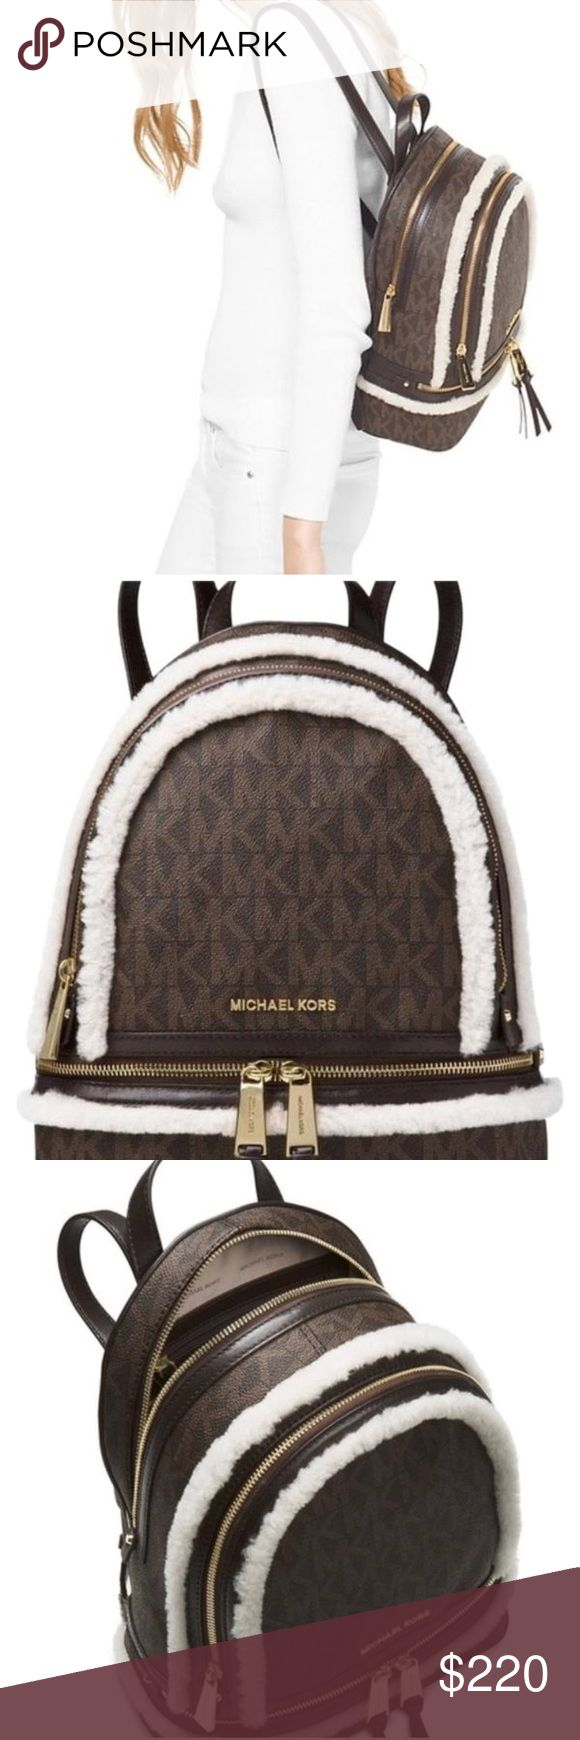 Brown MK Logo Shearing Rhea signature backpack Brown/ neutral MK logo backpack. Framed with soft shearing and gold zipper detail. Signature lingo stands out on this backpack. Top zip closure, lined, two exterior zip pockets, gold tone hardware. Interior features: 1 zip pocket, 3 open pockets, key clip. Perfect for traveling because of the deep pockets. KORS Michael Kors Bags Backpacks